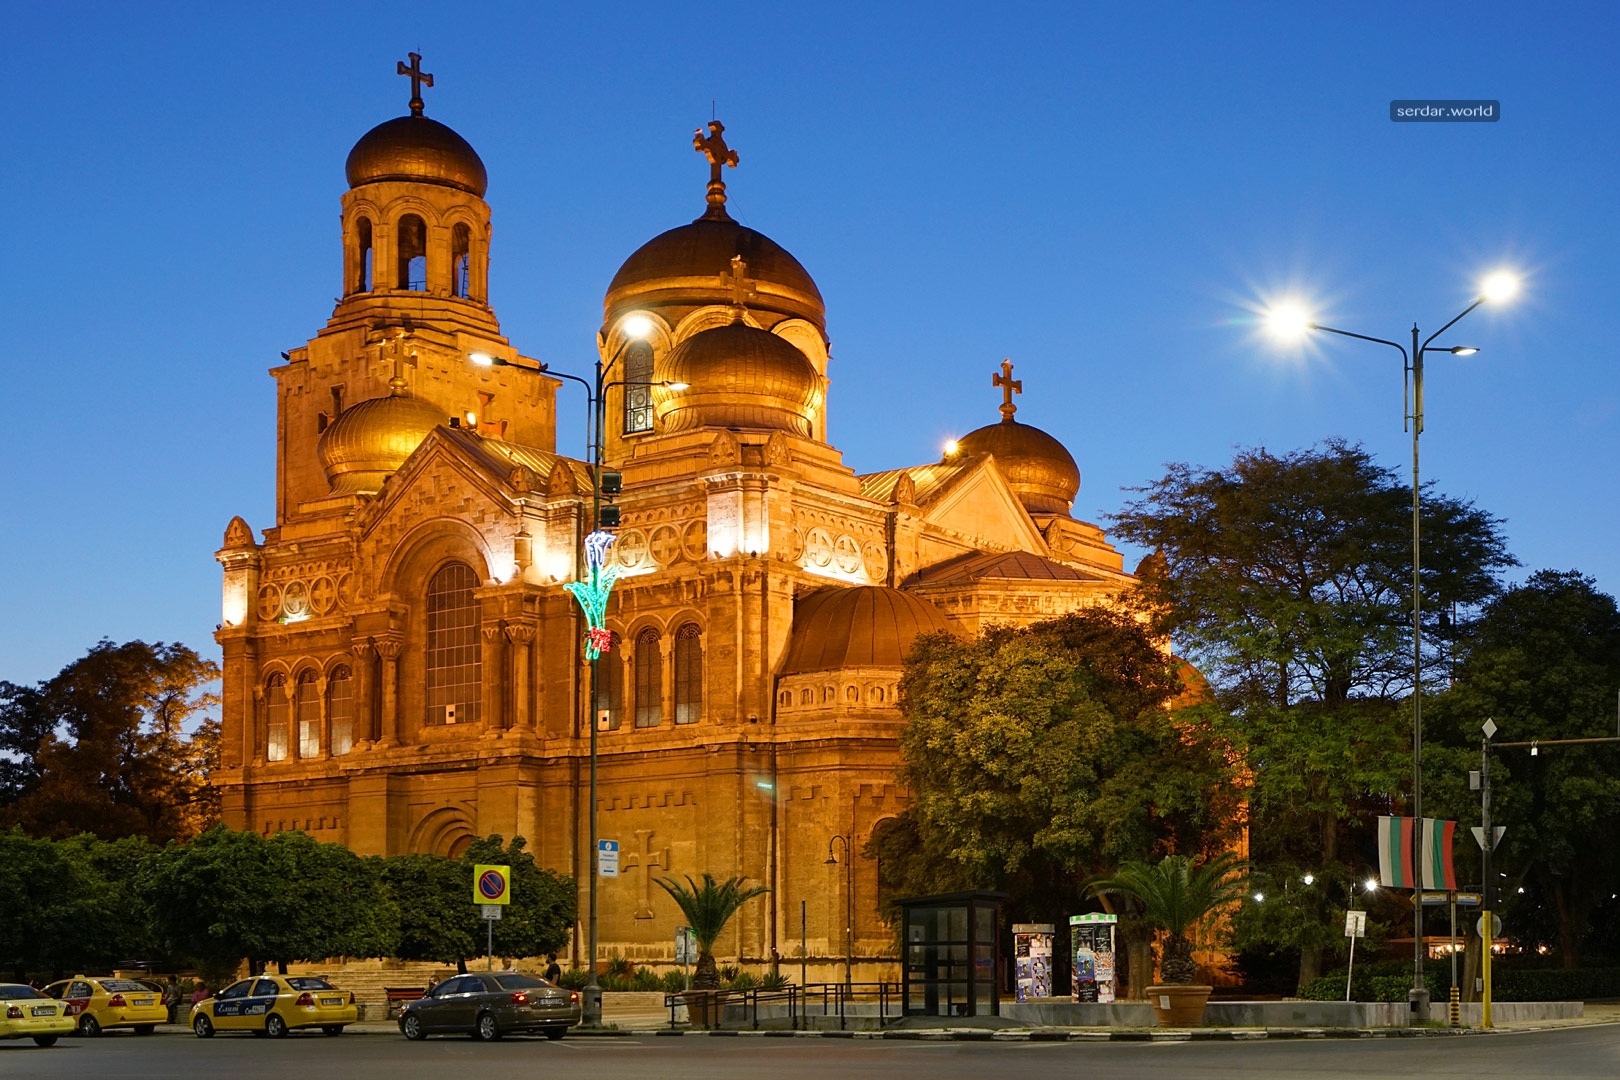 Dormition of the Theotokos Cathedral, Varna, Bulgaria.